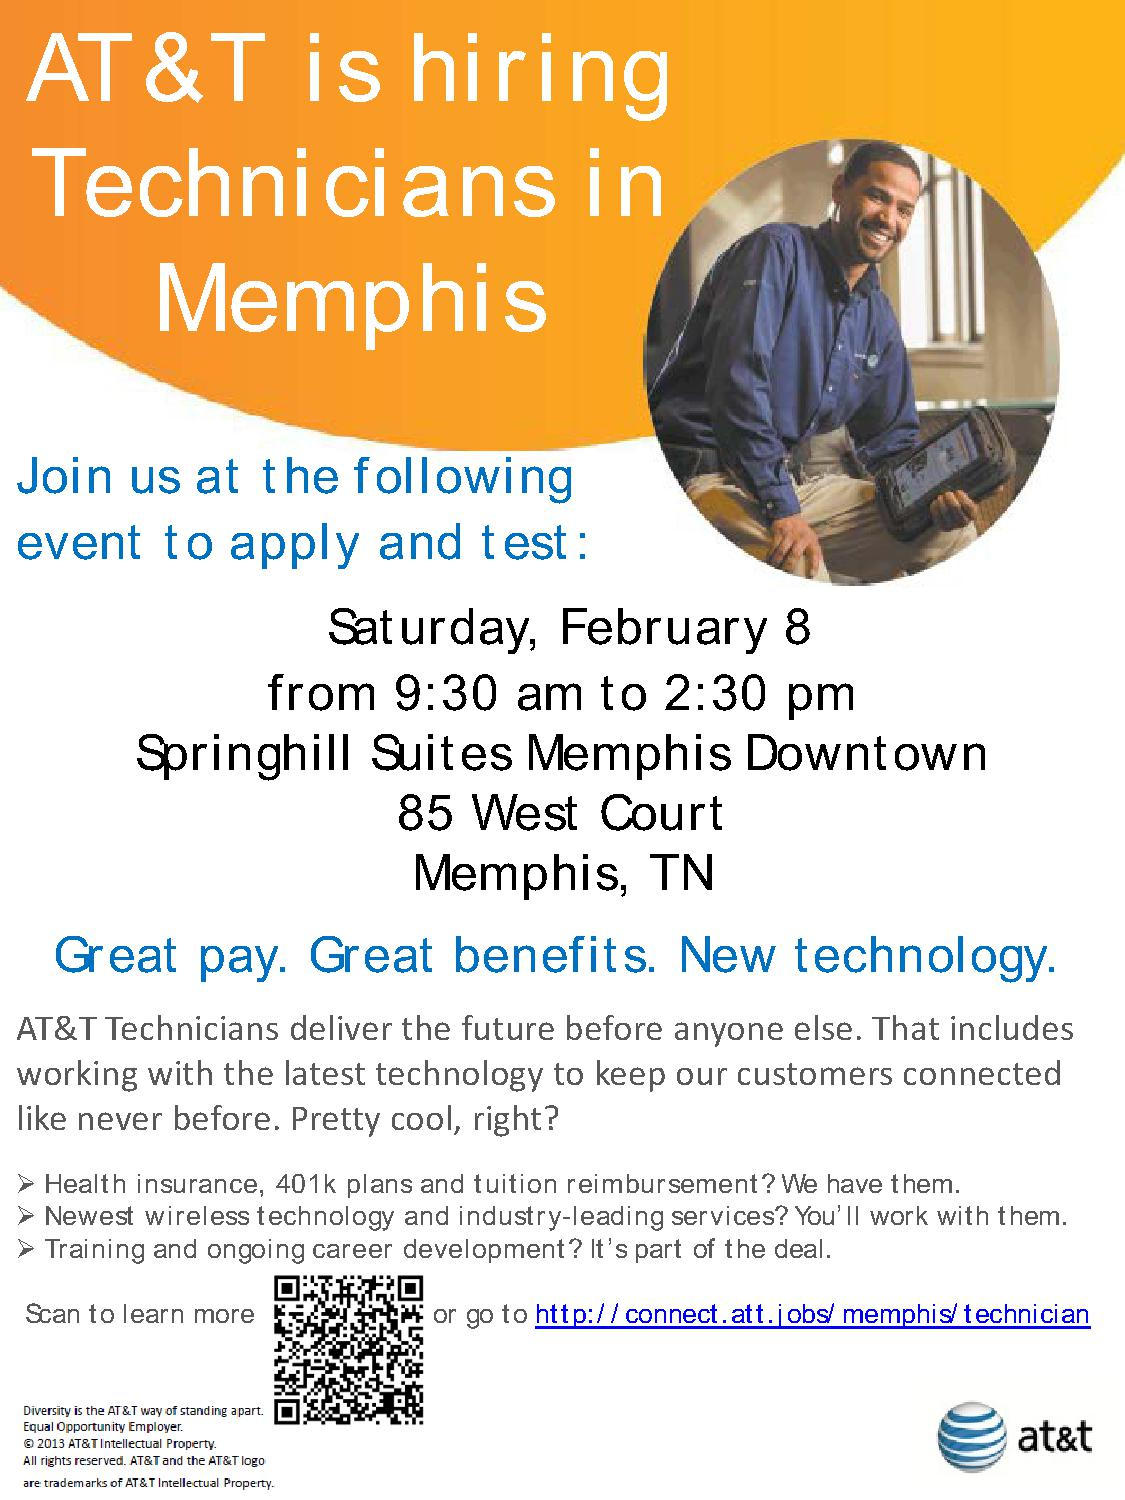 AT&T | Job & Career News from the Memphis Public Libraries